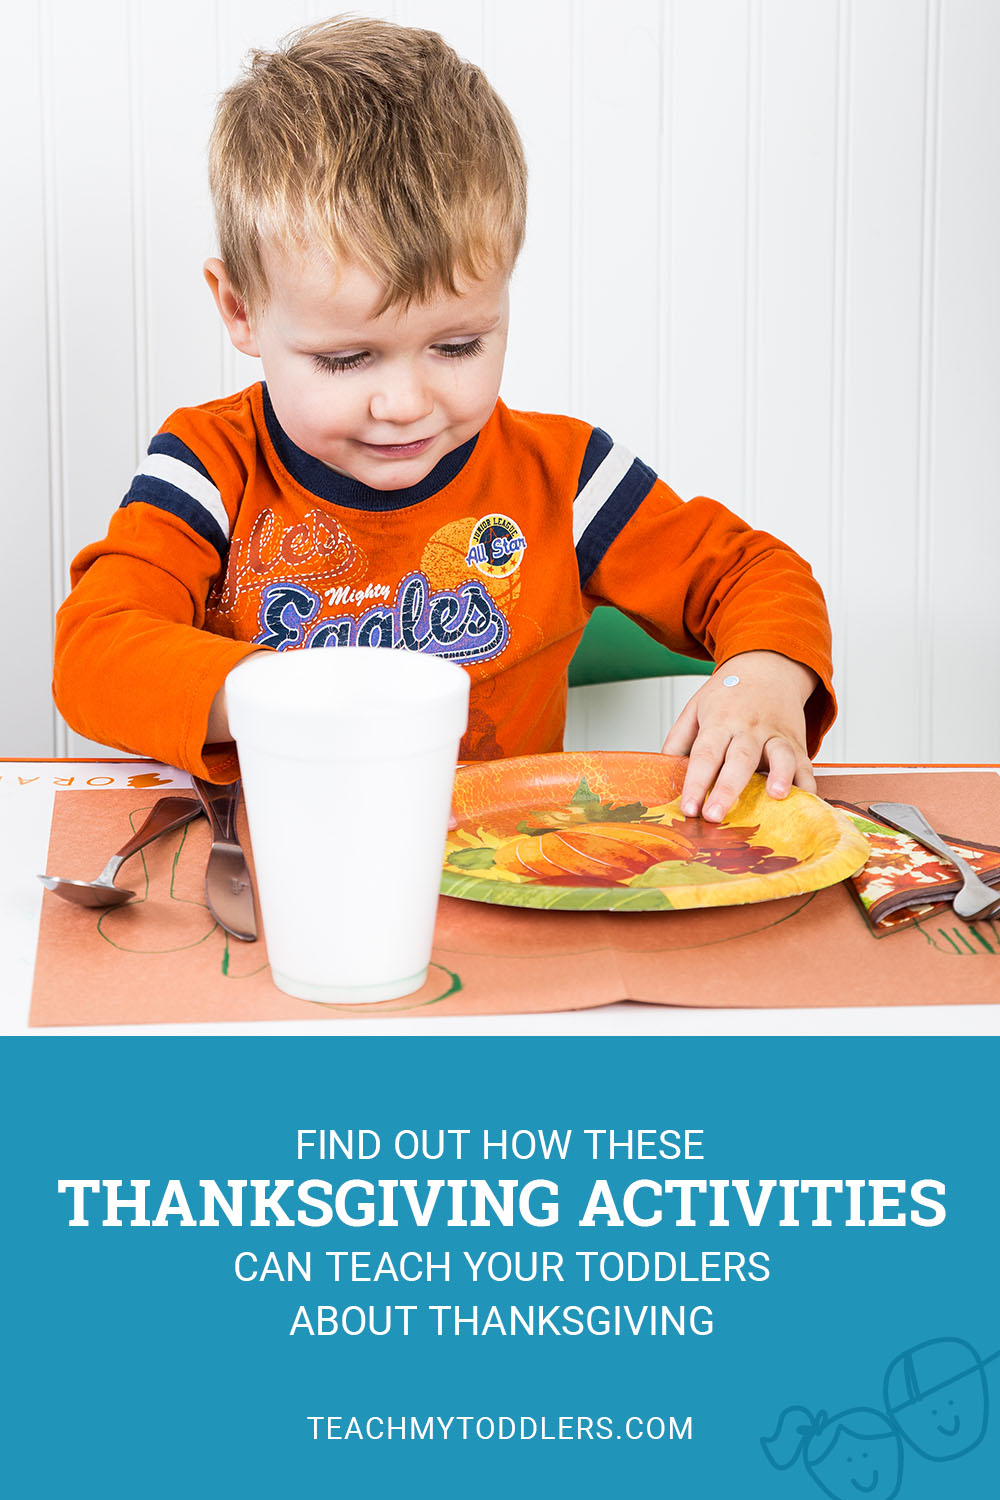 Find out how these thanksgiving activities can teach your toddler about thanksgiving